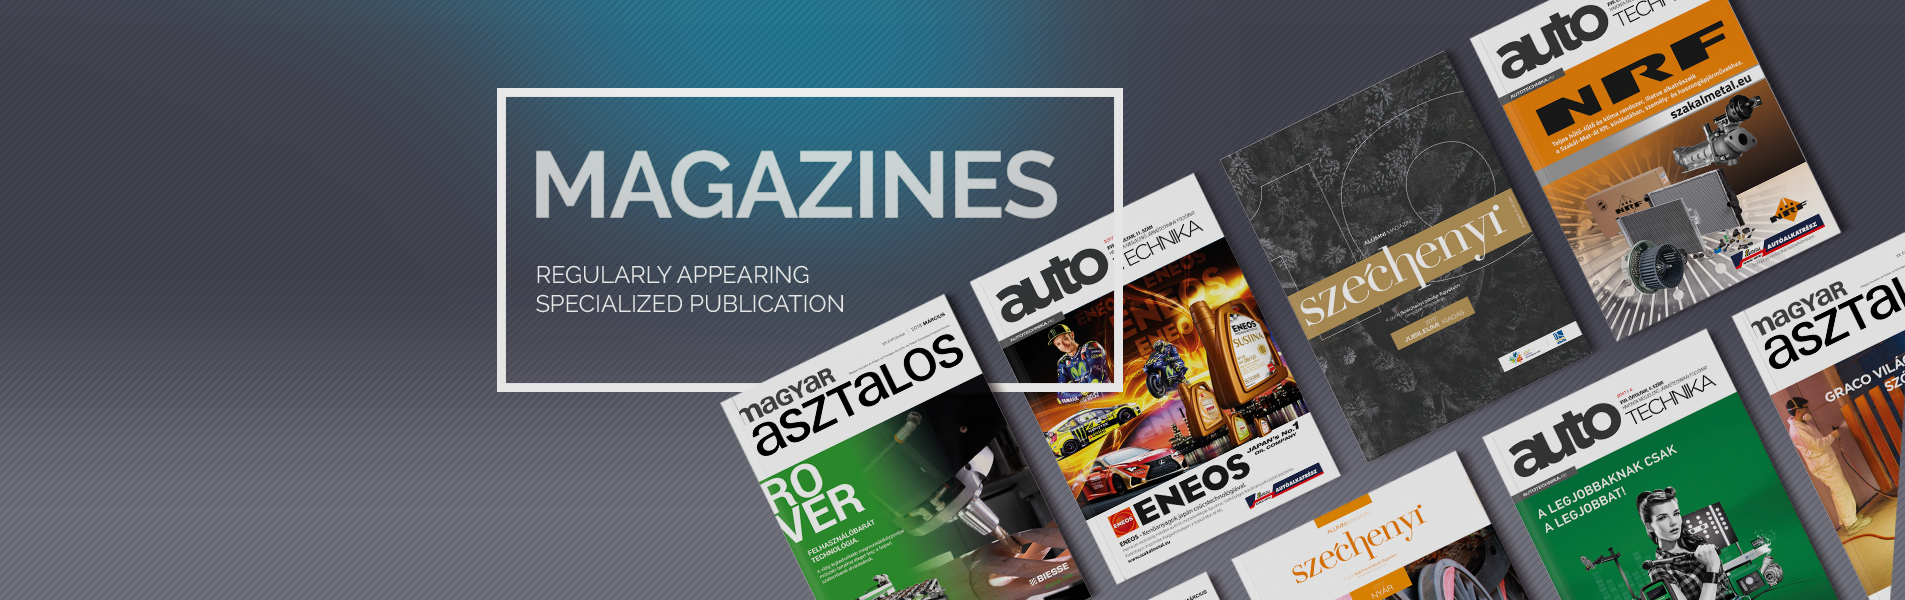 magazin_headers_1905x600_ENG